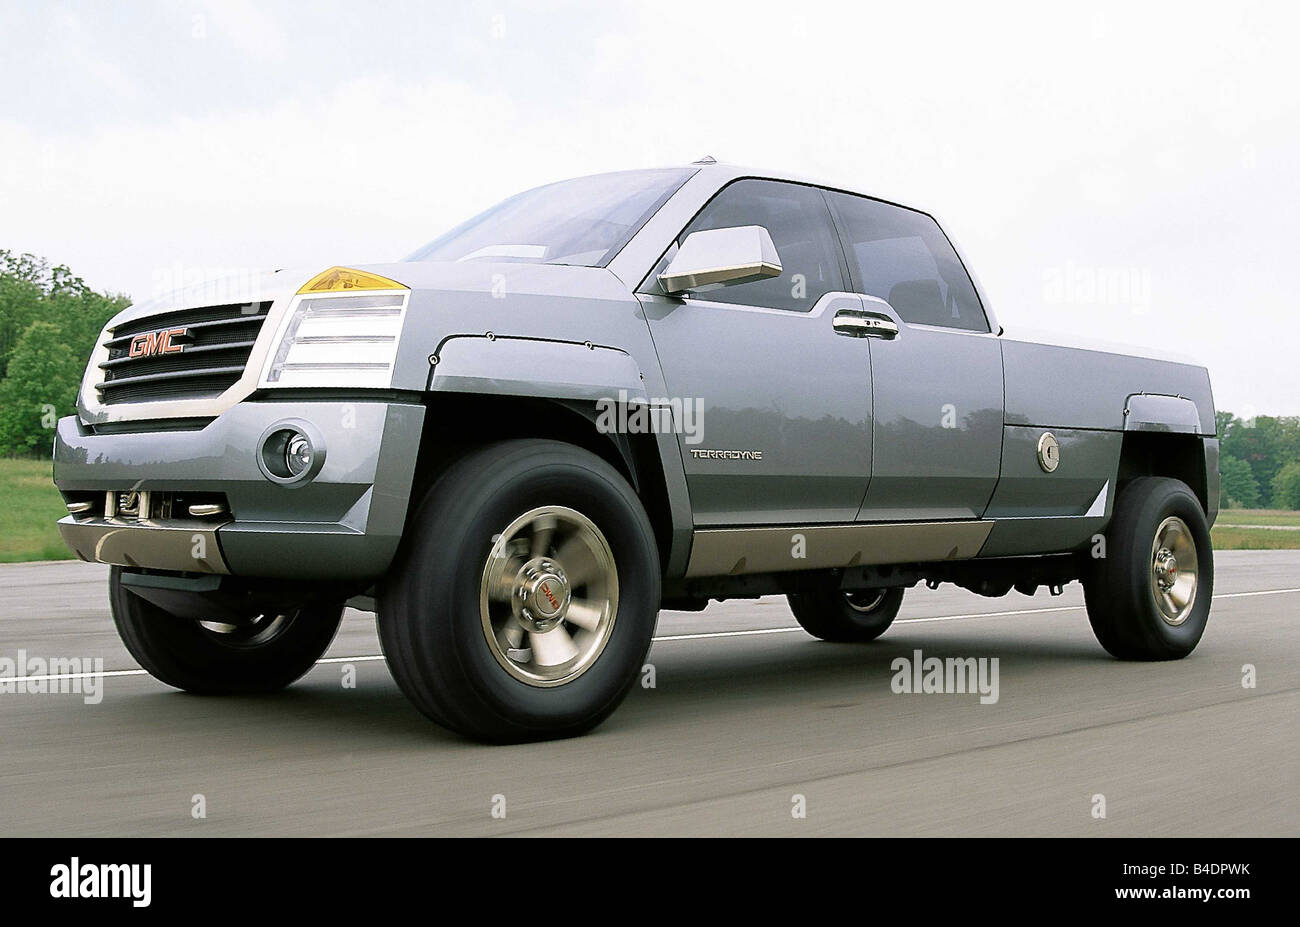 Car, Concept Cars General engines, Terradyne, model year 2000, silver, gray, diagonal from the front, driving, ams - Stock Image